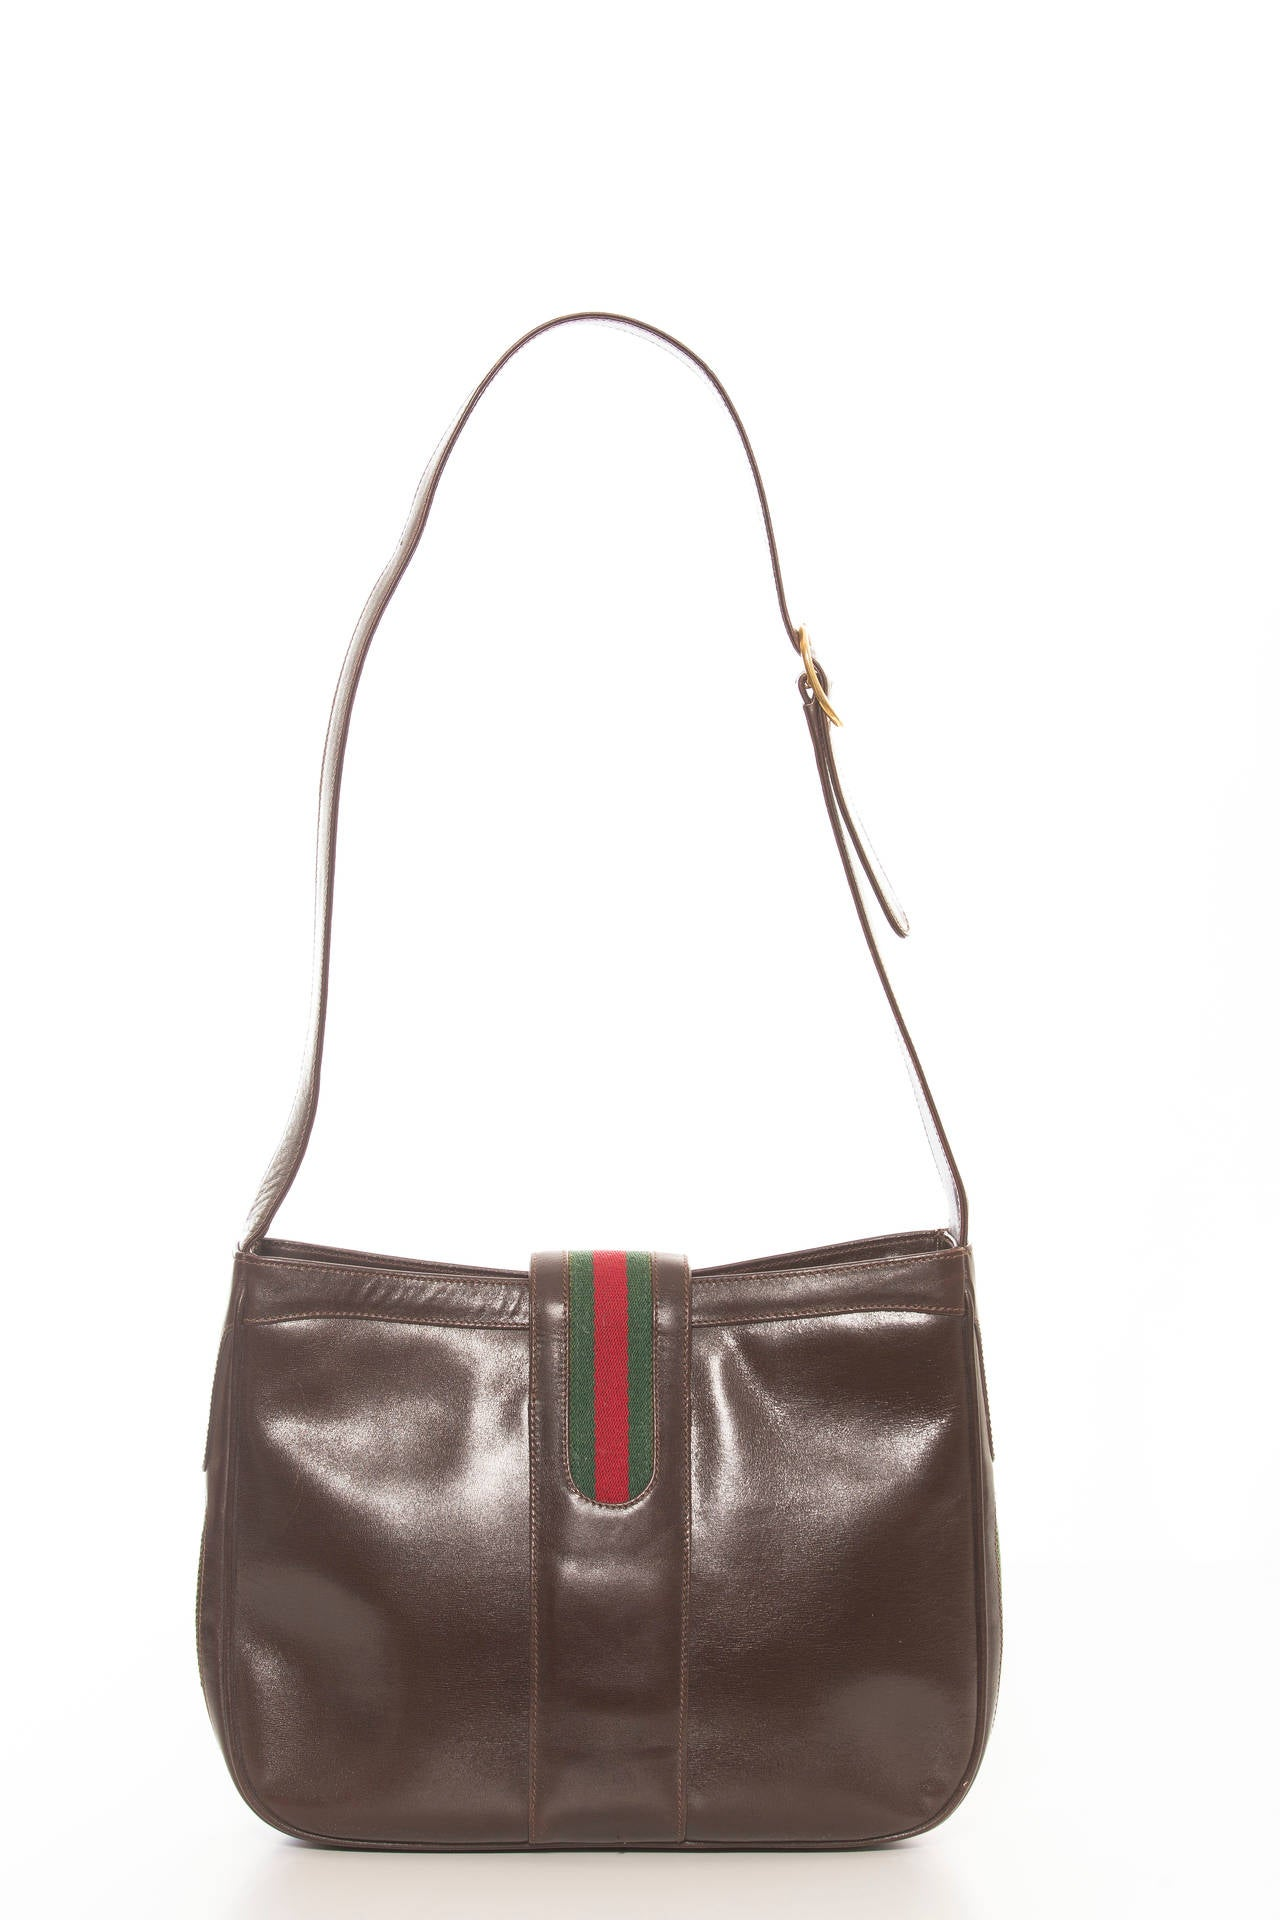 Black Gucci Brown Leather Handbag With Equestrian Boot Clasp, Circa 1970's For Sale